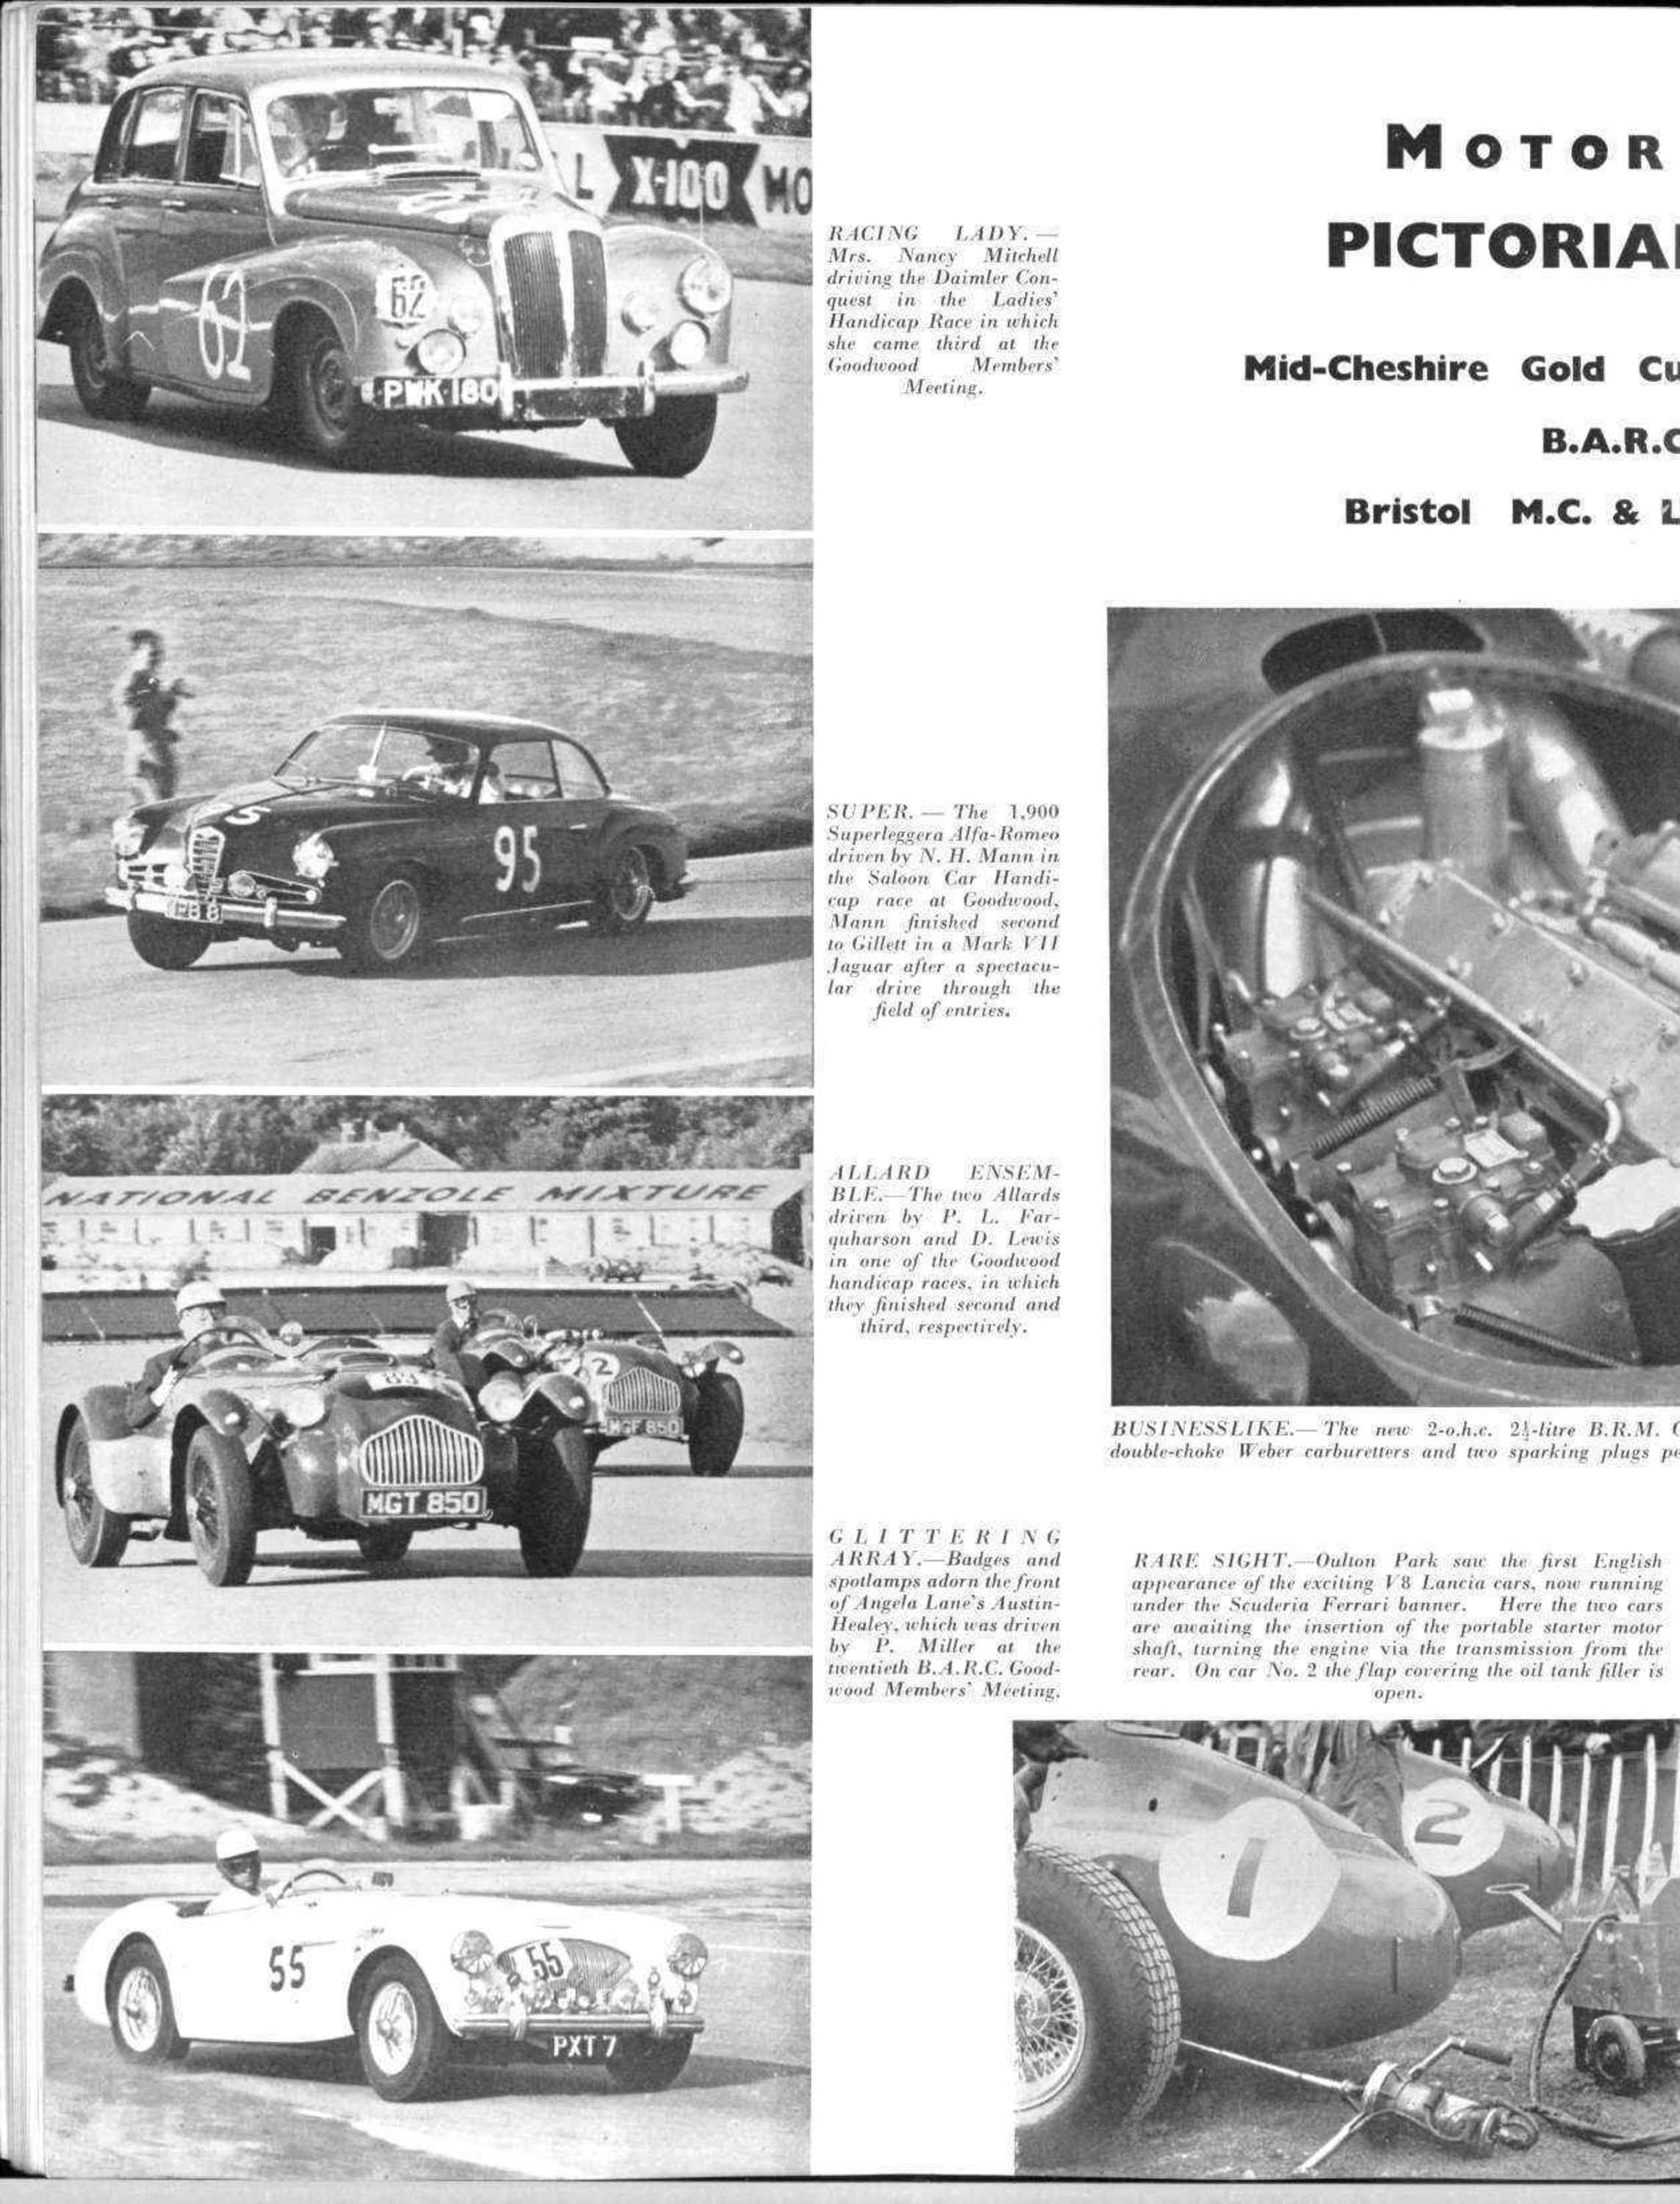 Motor Sport Pictorial Review